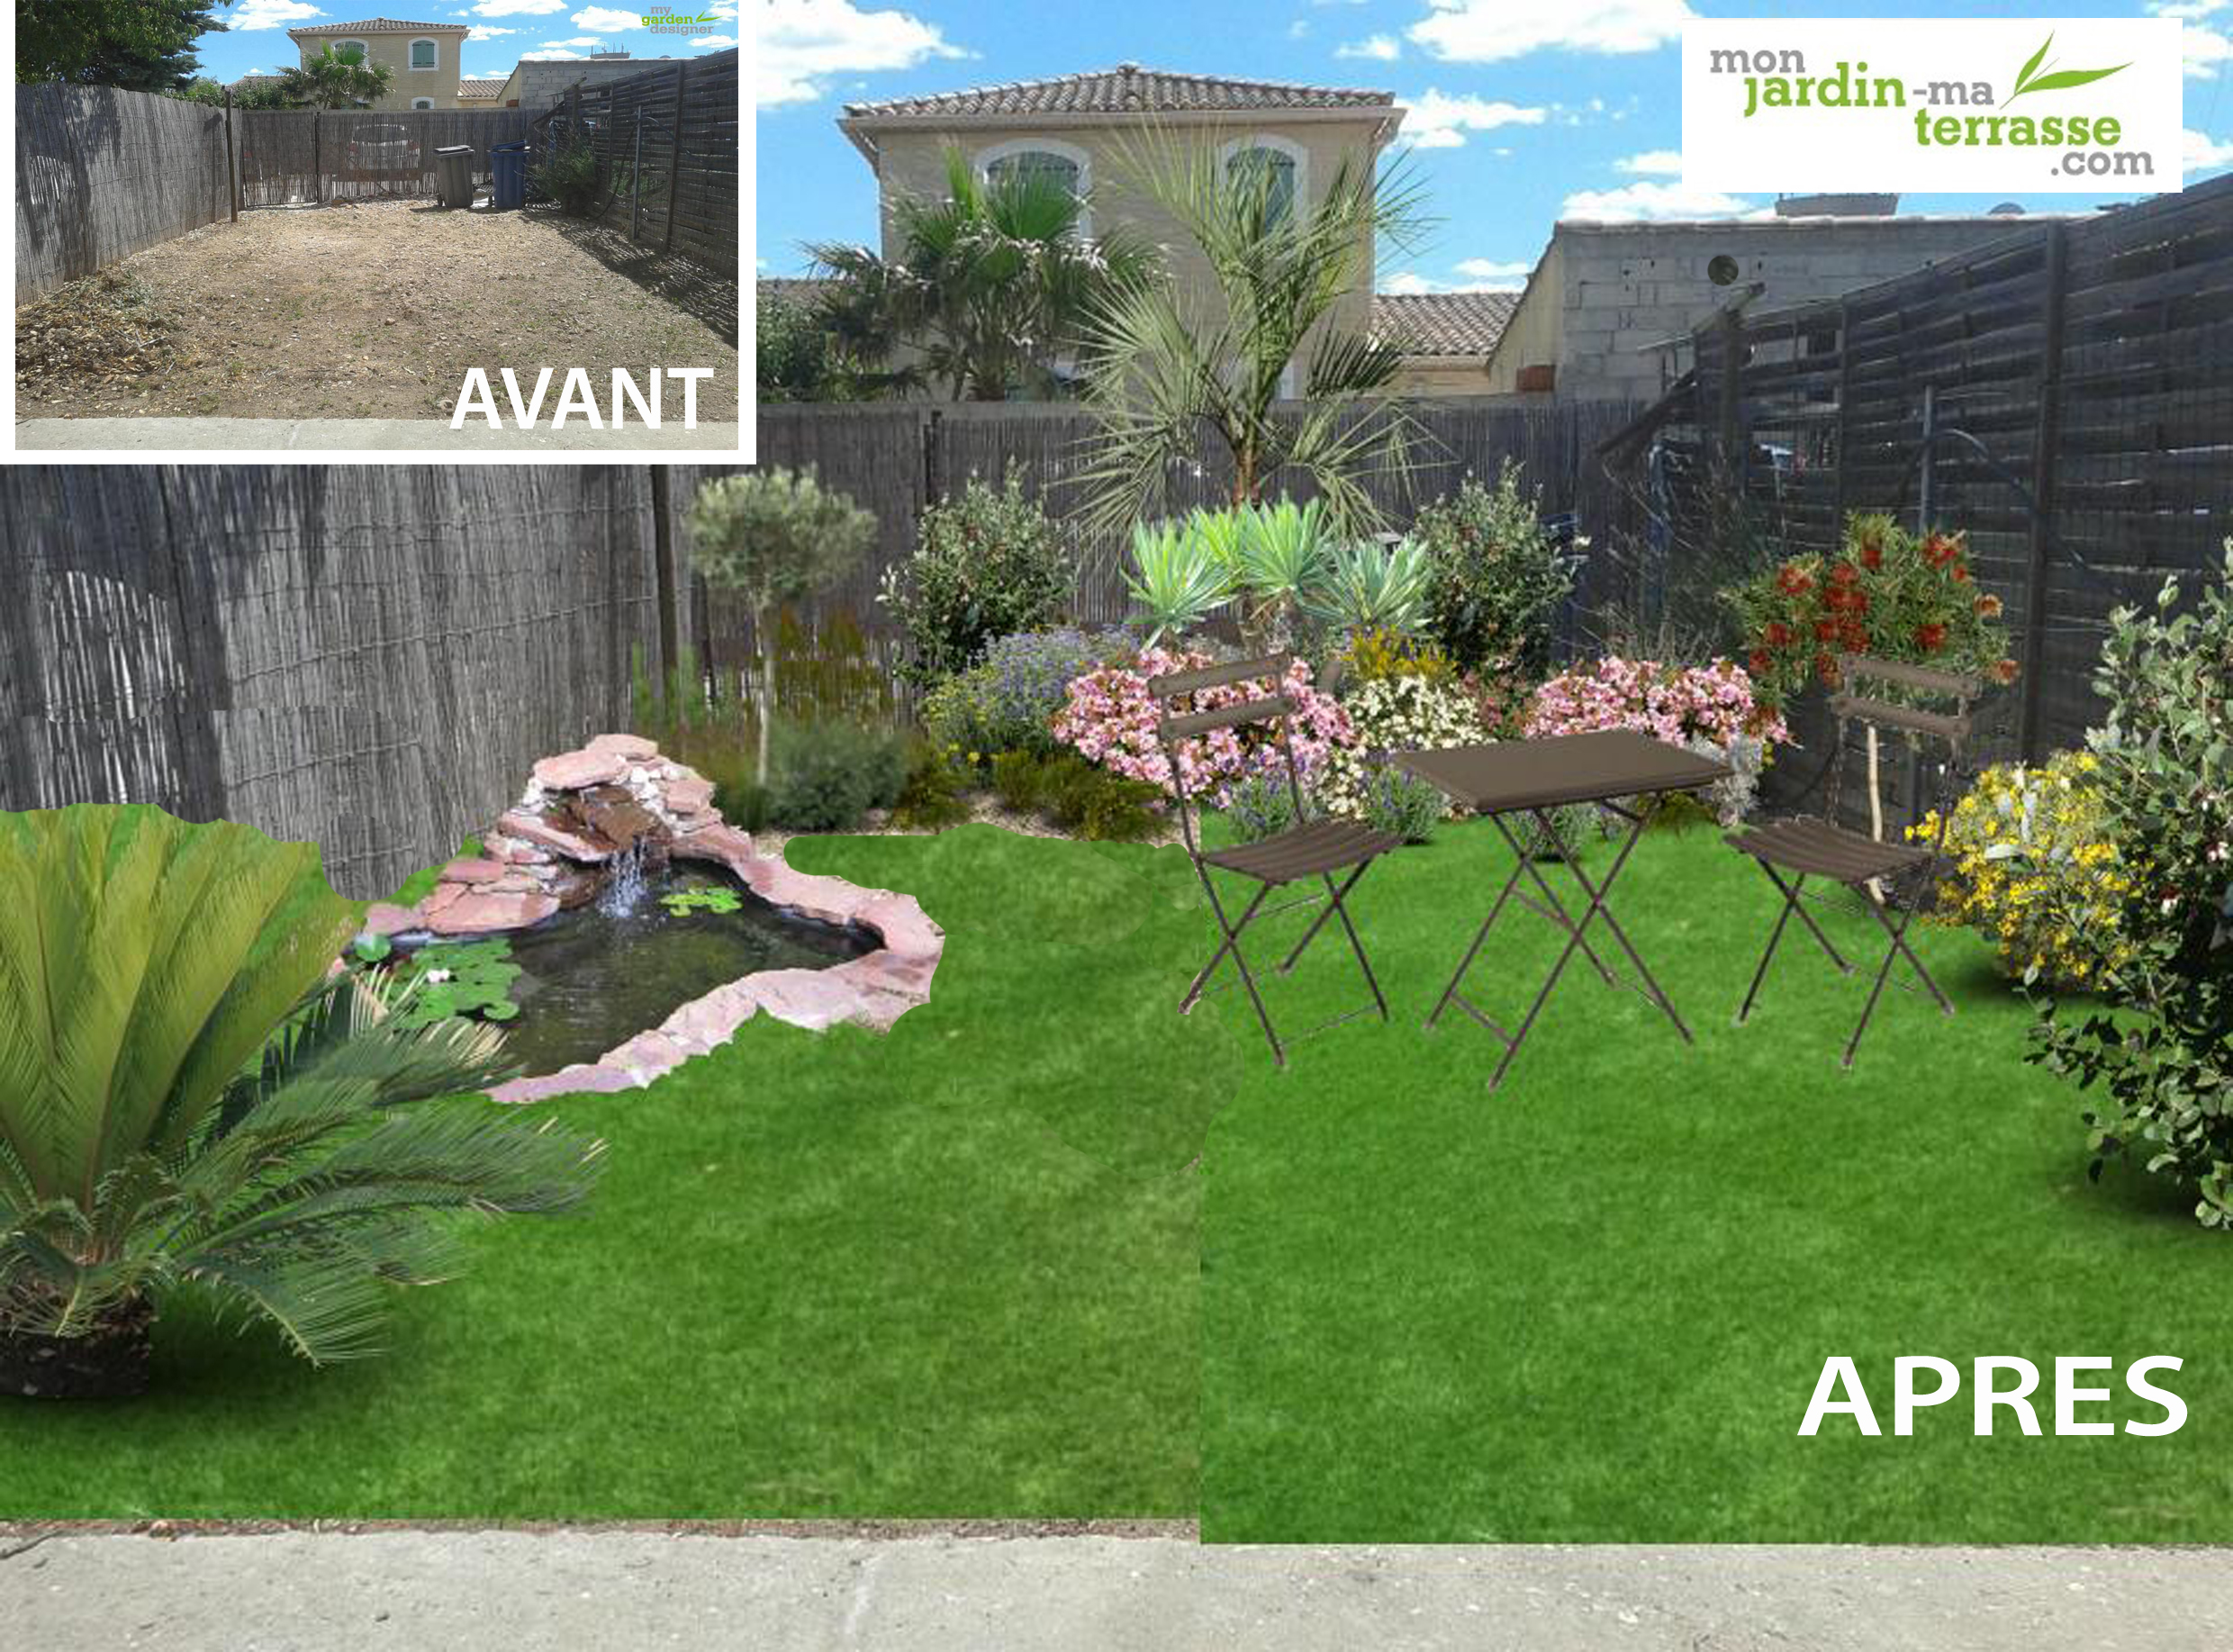 Id e d am nagement d un petit jardin monjardin for Amenagement de petit jardin